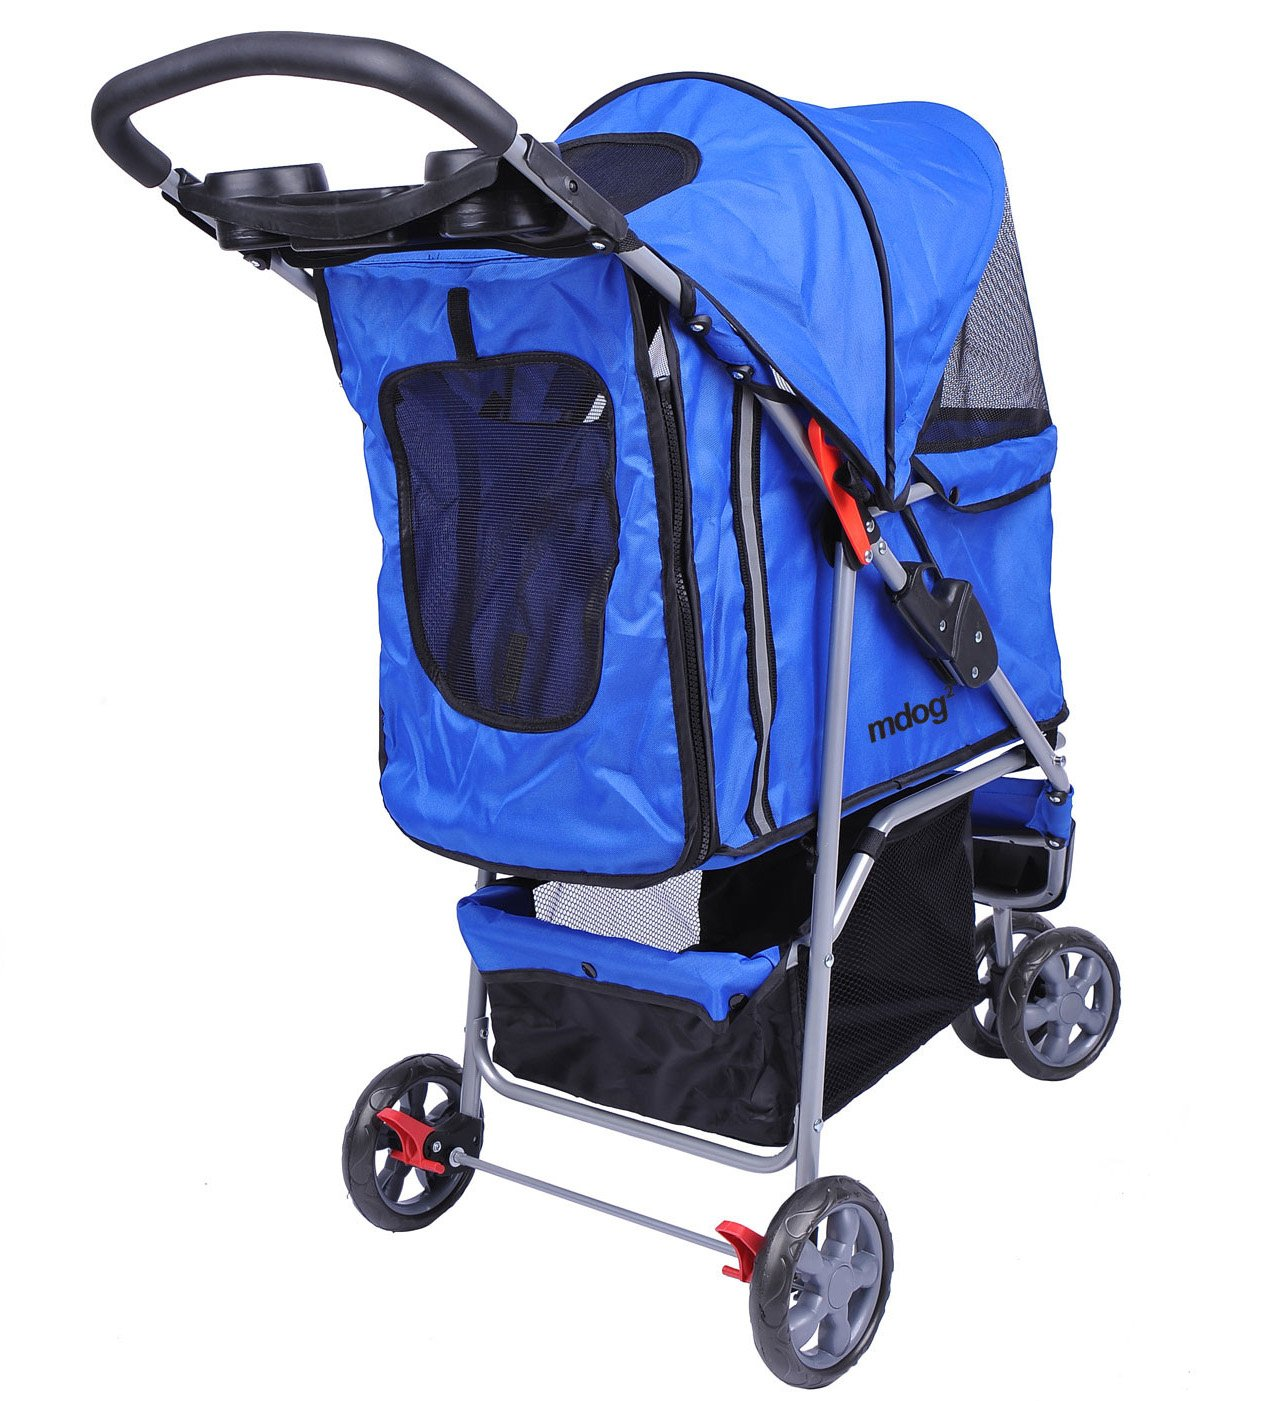 MDOG2 MK0015A 3-Wheel Front and Rear Entry Pet Stroller, Blue by MDOG2 (Image #3)